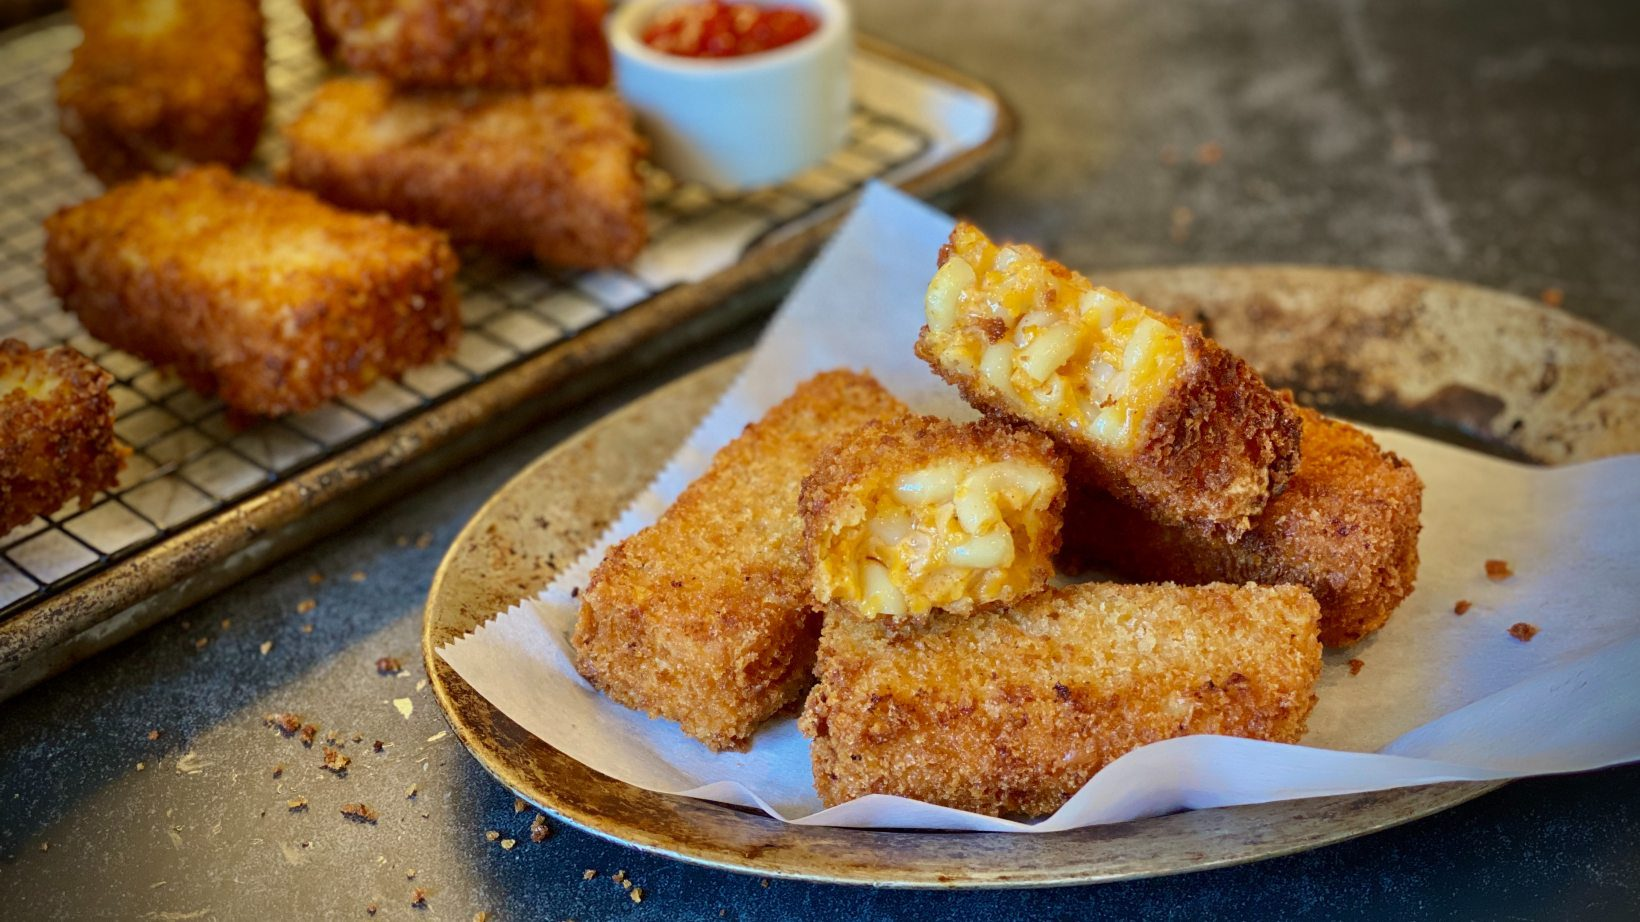 Fried mac and cheese sticks on a paper towel-lined plate.